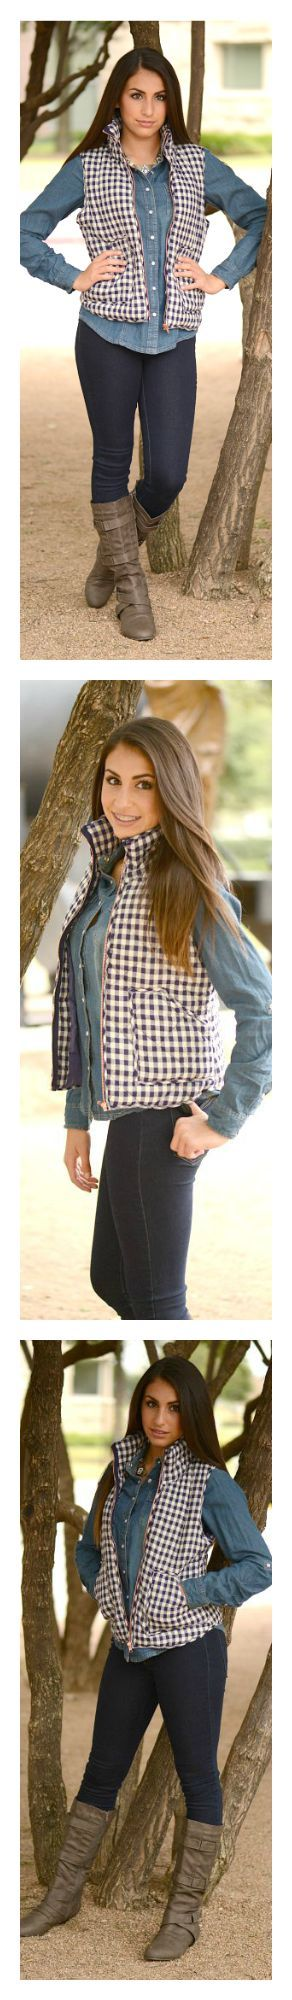 The best fall vest! Gorgeous gingham print that  is so transitional! This vest is must have for fall and winter!